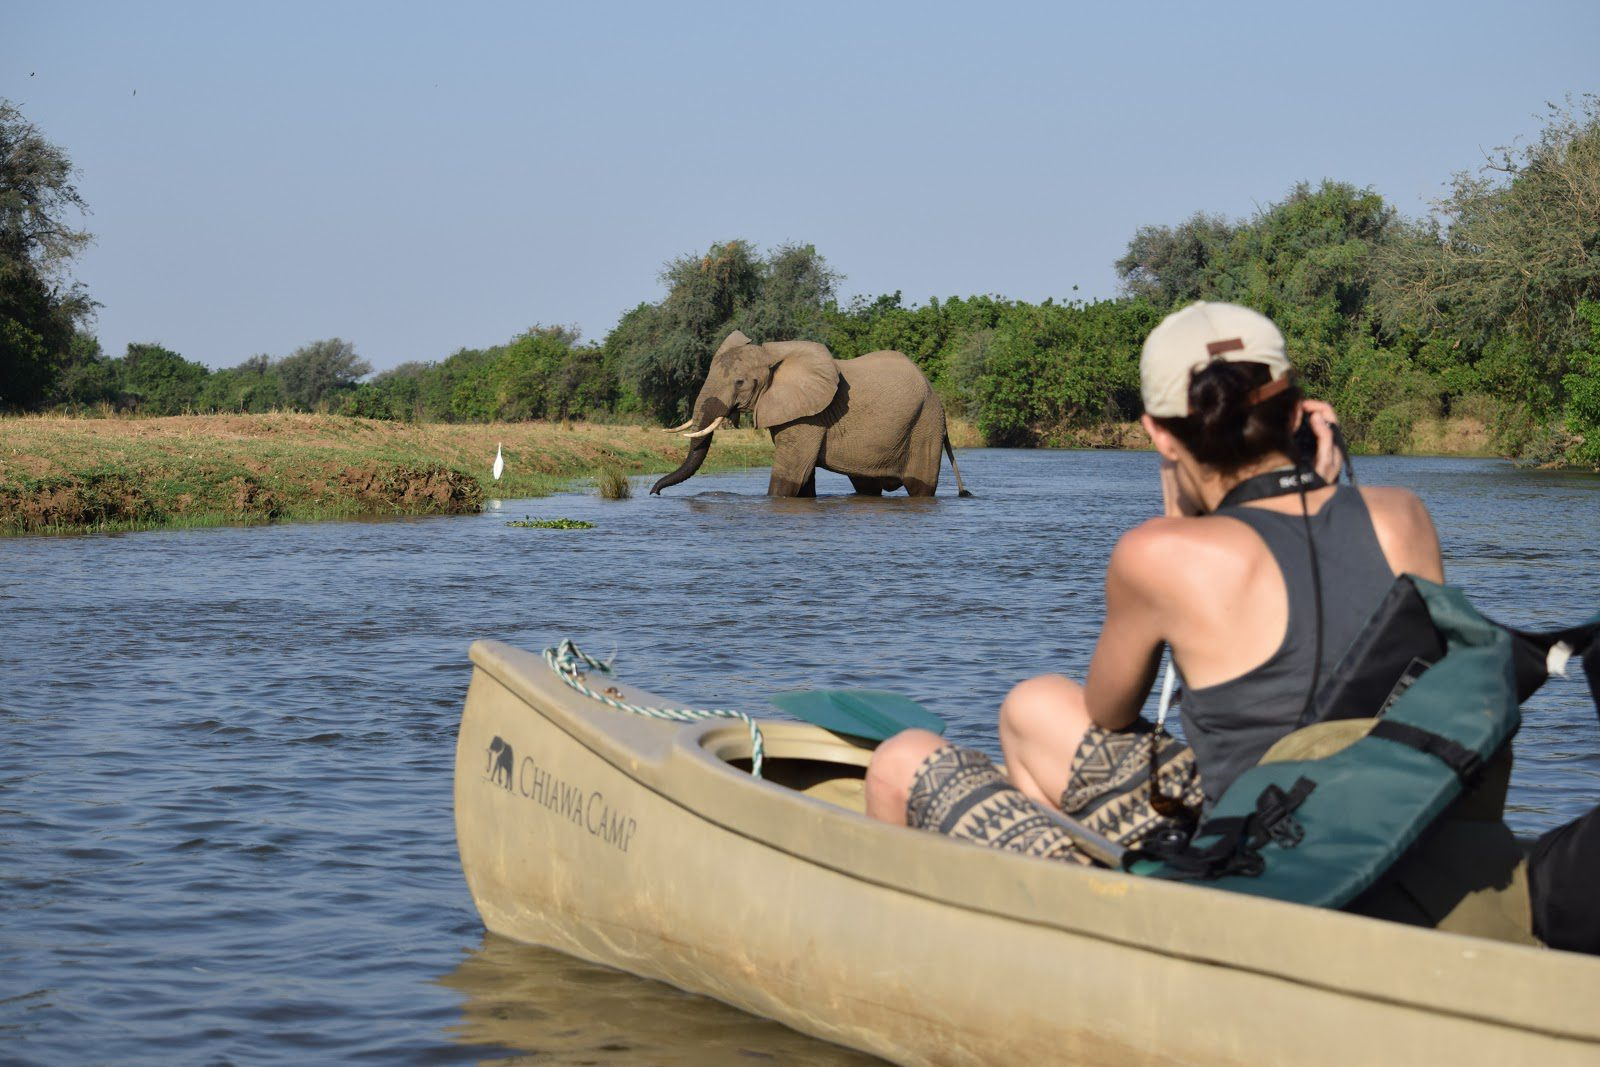 woman sitting in a canoe photographing an elephant wading through the water